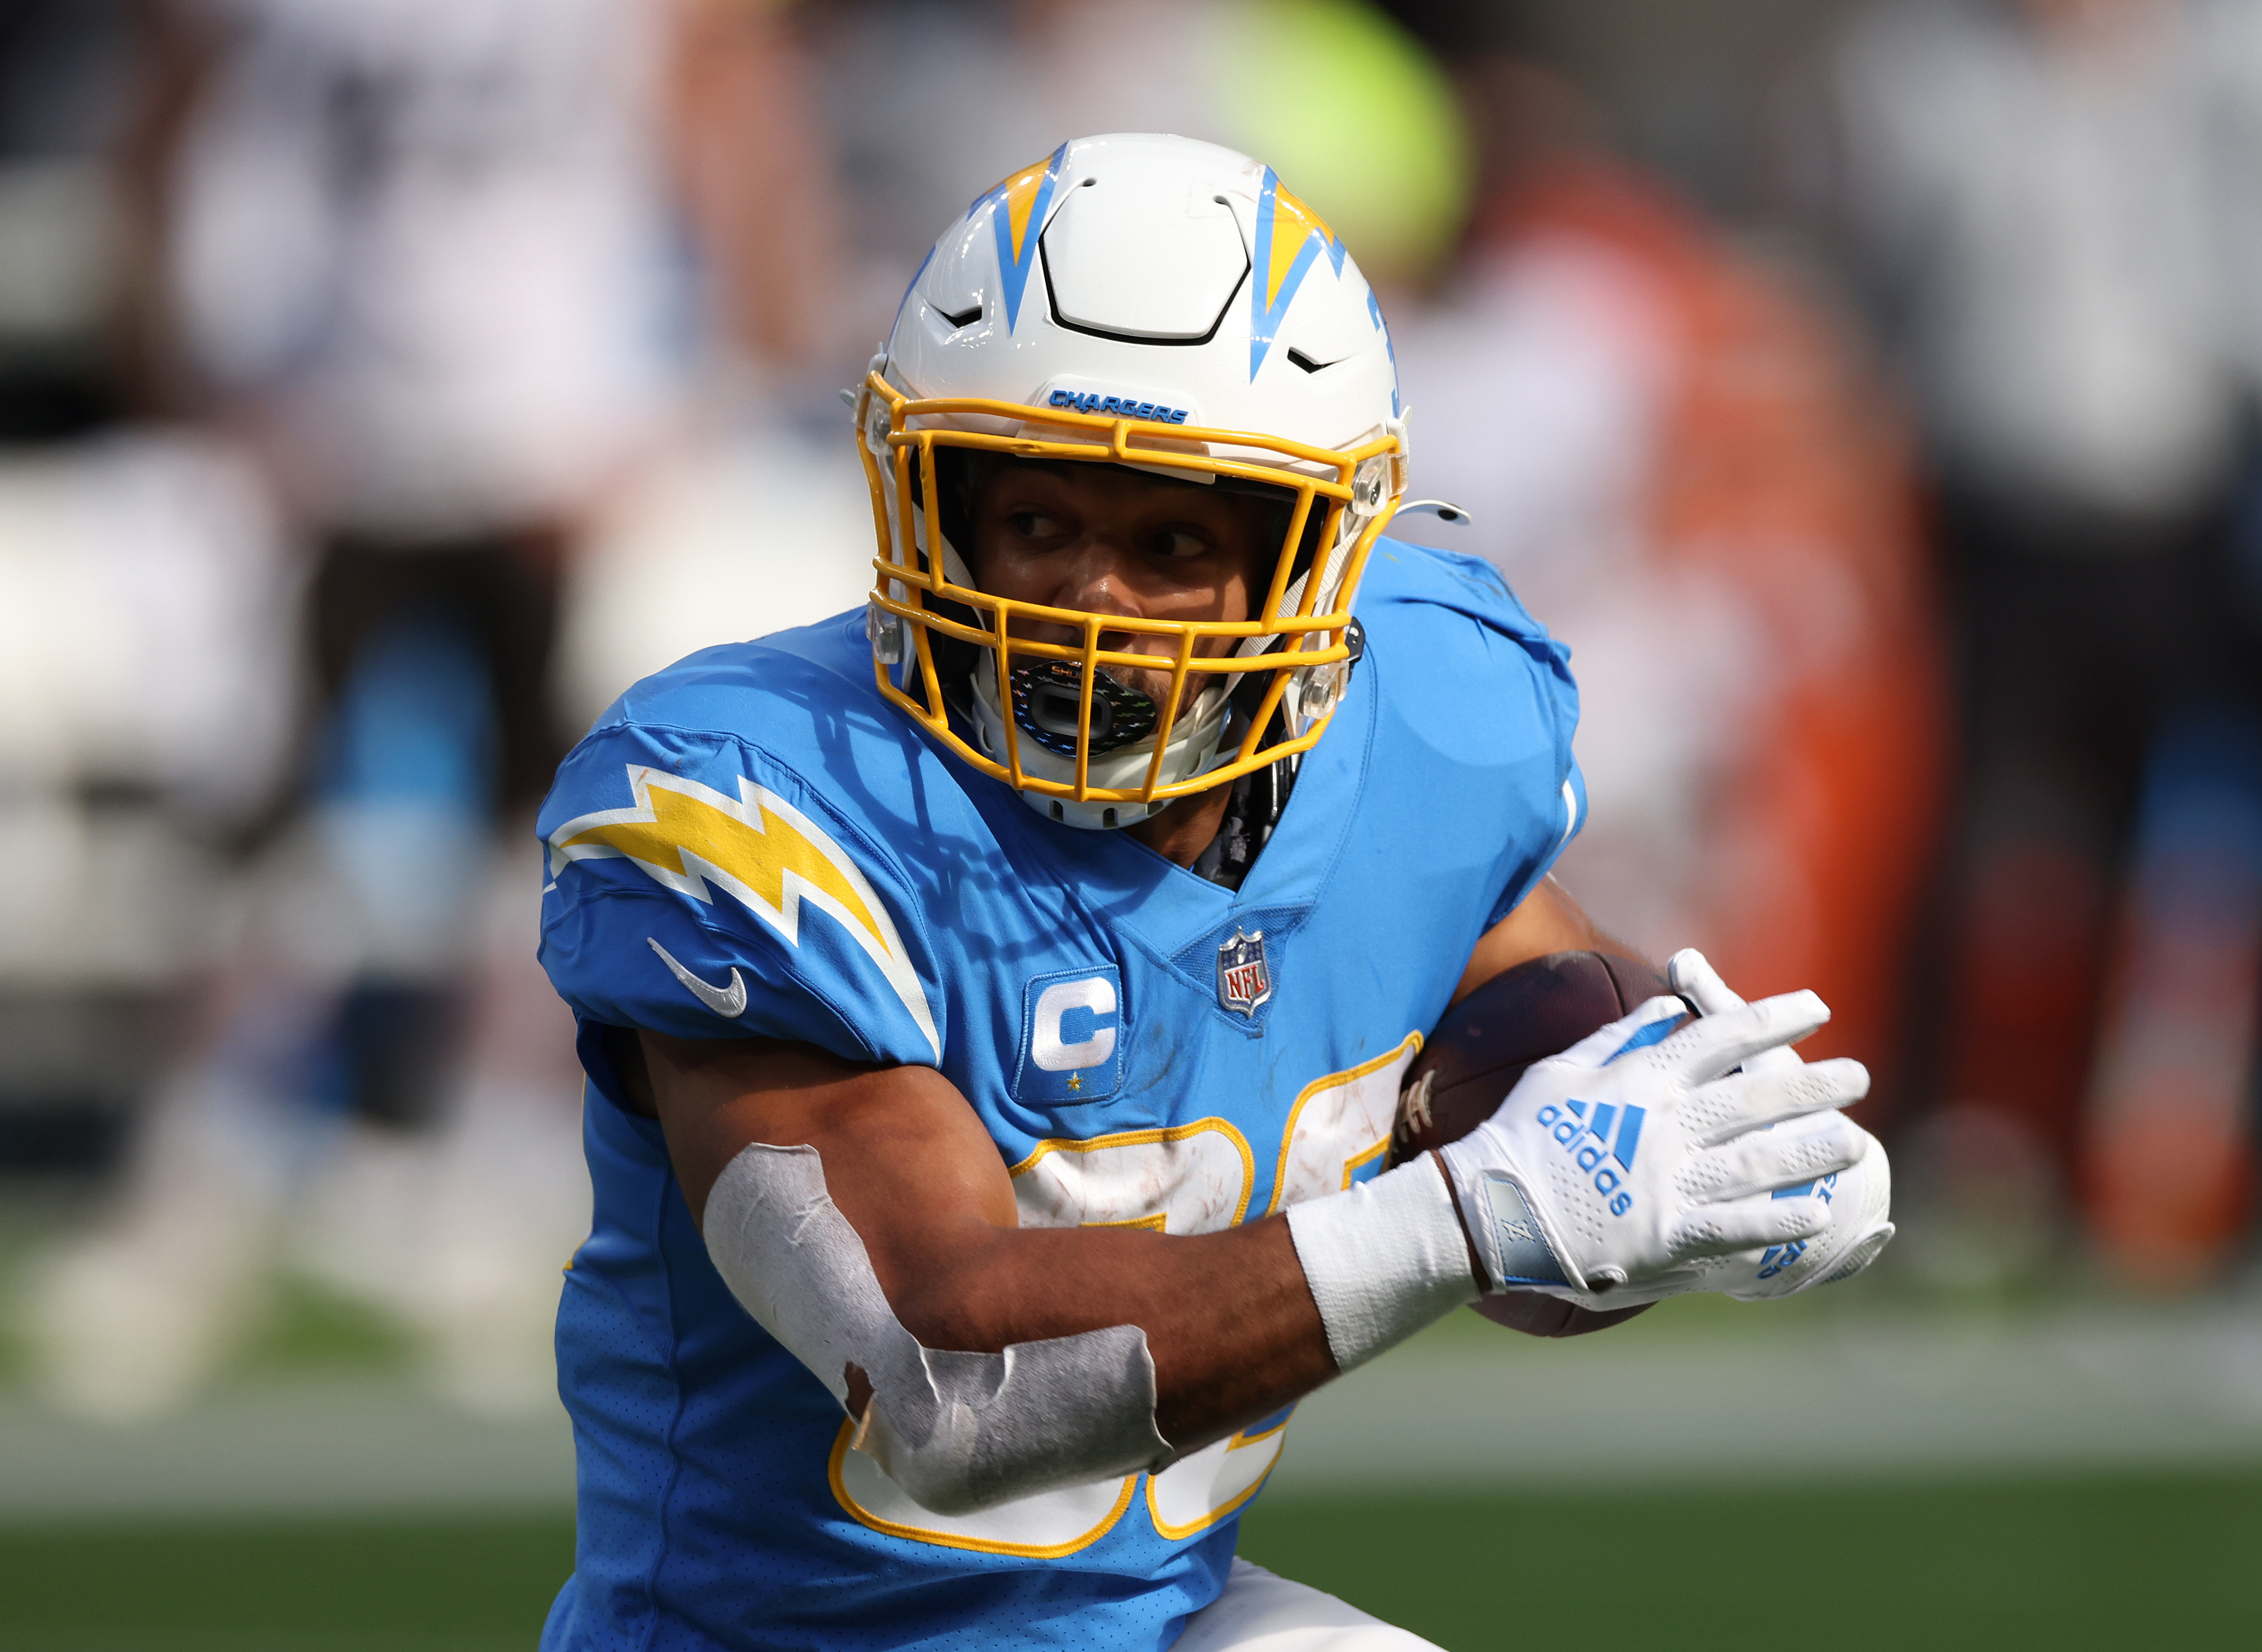 Austin Ekeler #30 of the Los Angeles Chargers carries the ball during a 47-42 win over the Cleveland Browns at SoFi Stadium on October 10, 2021 in Inglewood, California.